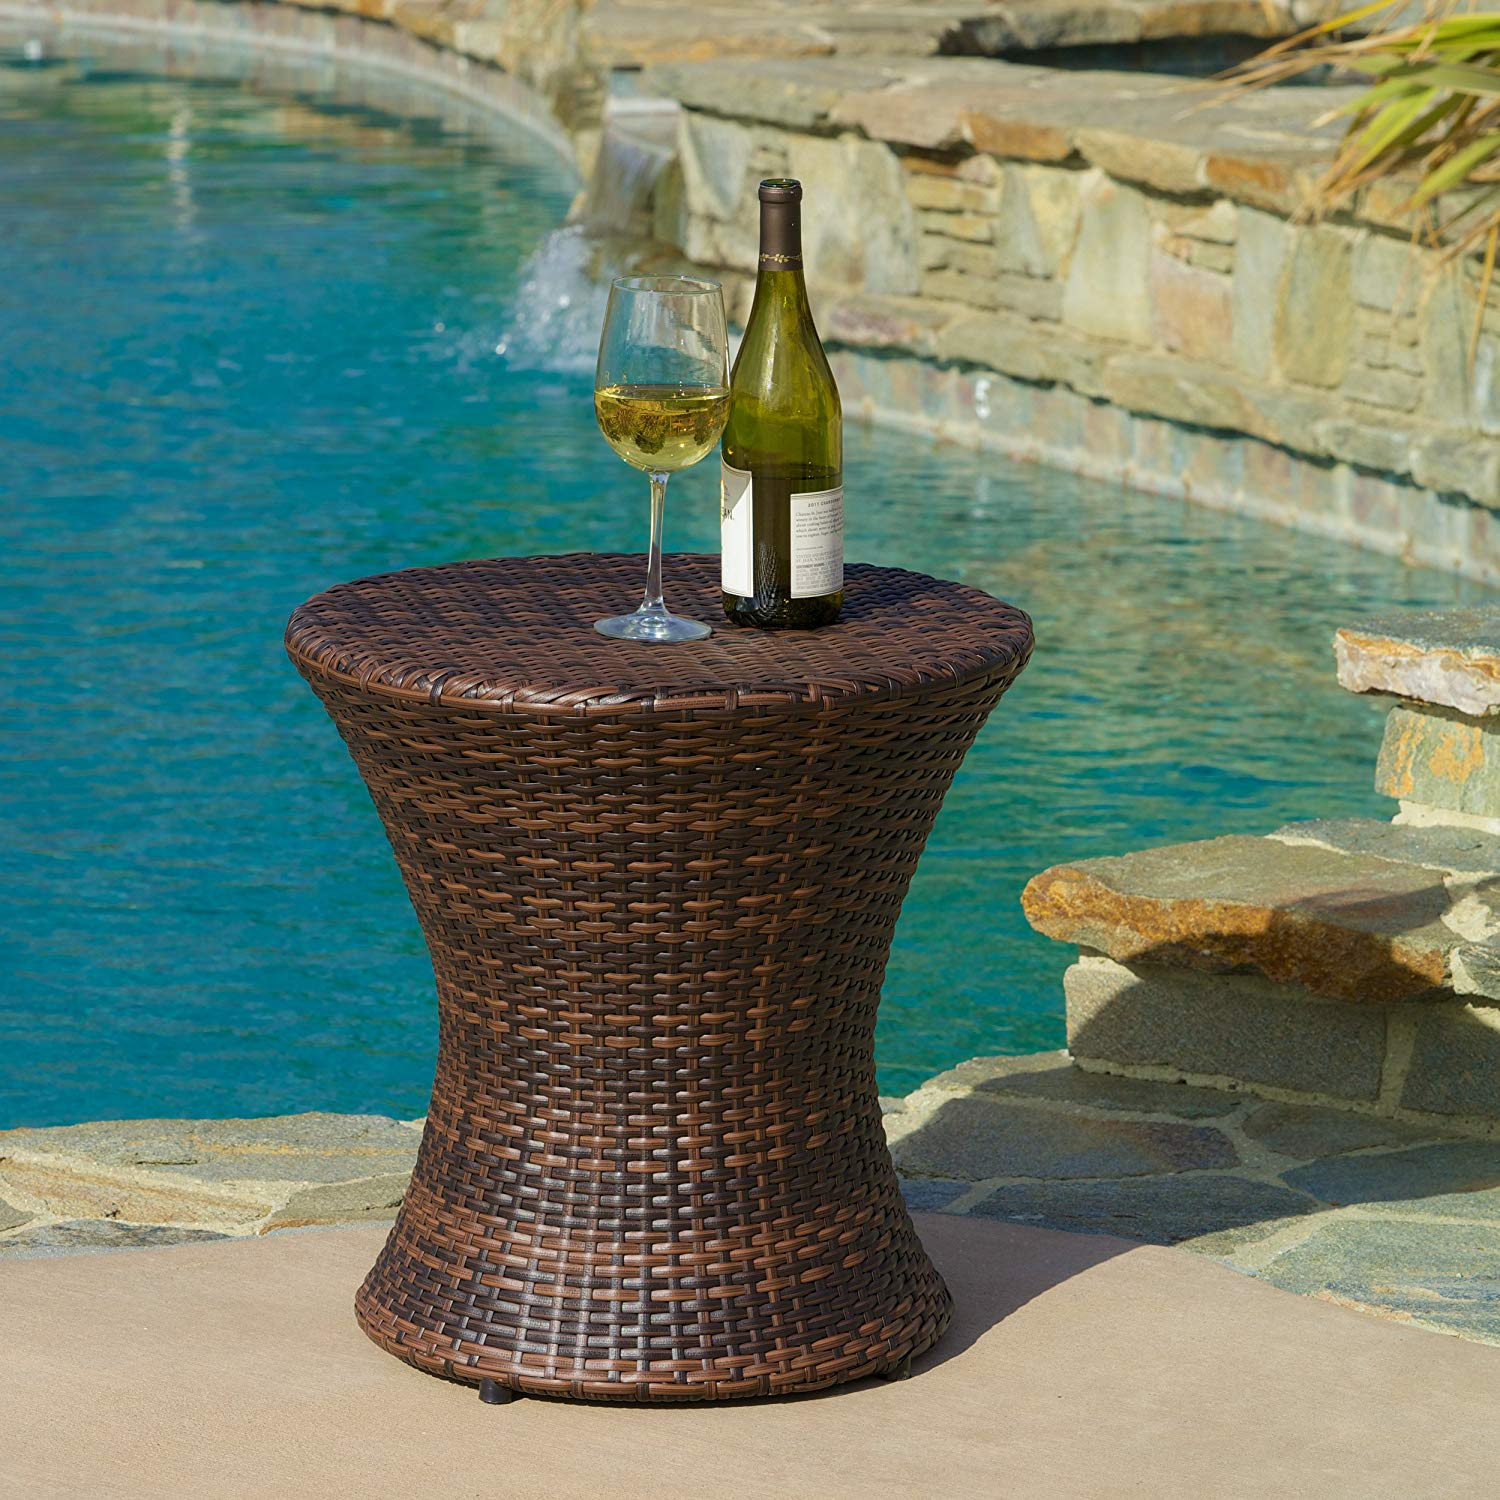 enjoyable ideas outdoor accent table just another wordpress site super cool lorenzo grey wicker garden tables clearance with storage zaltana mosaic rattan side glass top white